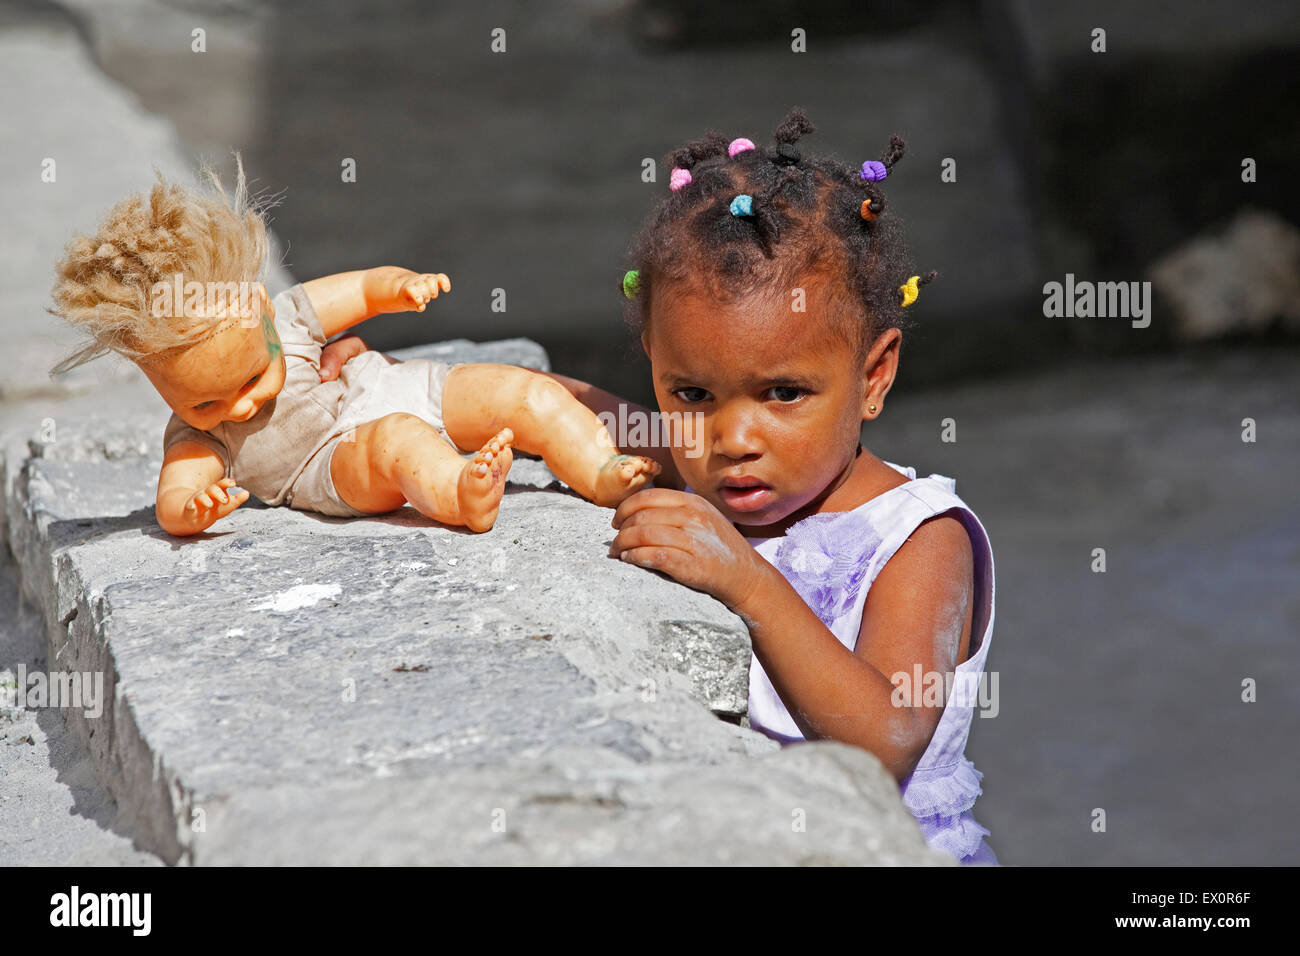 Creole girl with braided hair playing with doll on the island Santo Antão, Cape Verde / Cabo Verde, Western - Stock Image